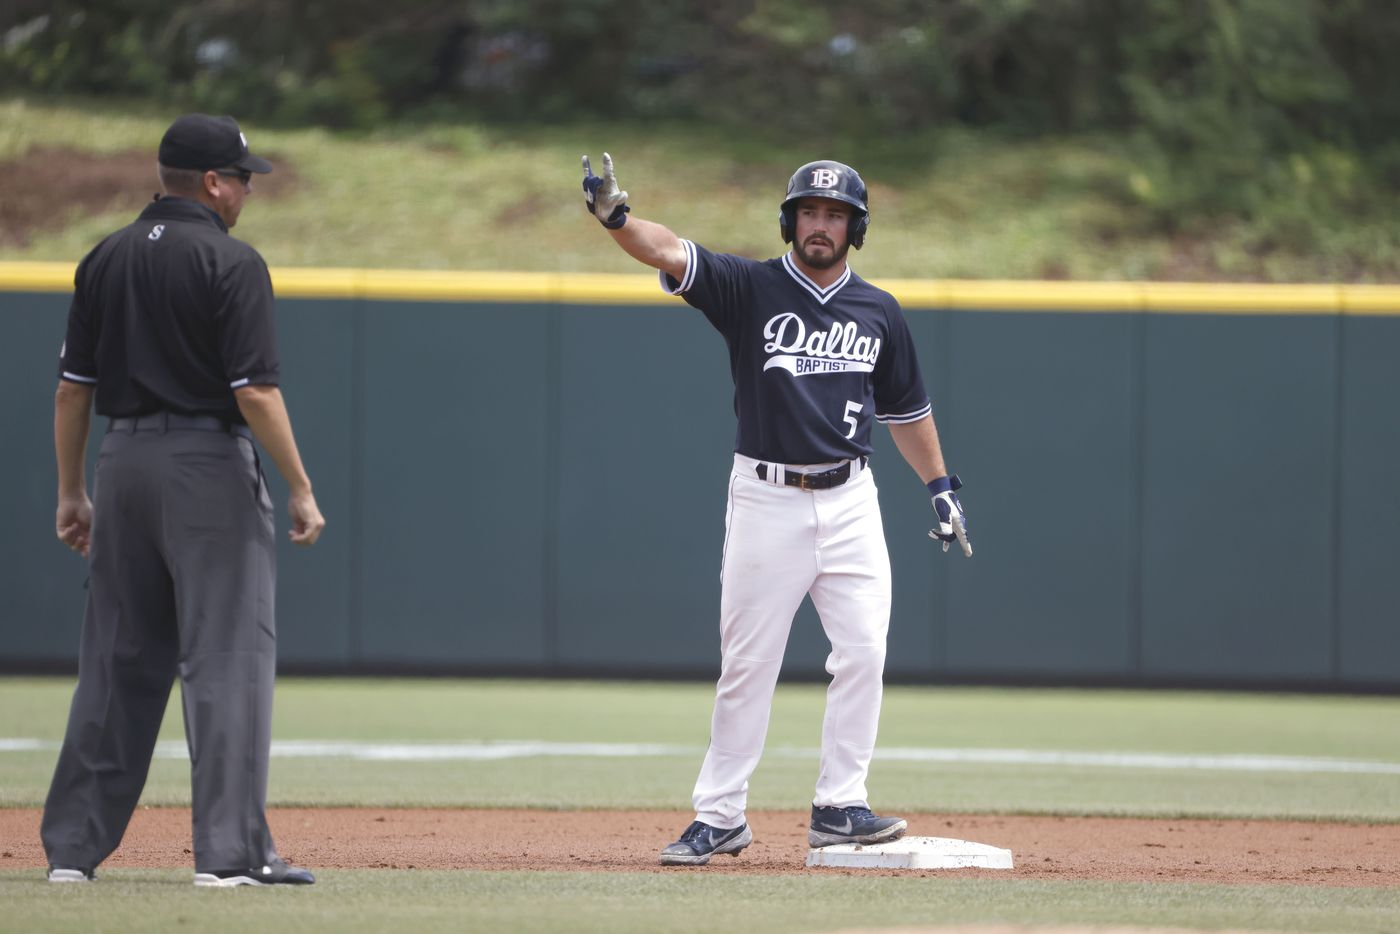 Dallas Baptist outfielder Austin Bell (5) reacts after hitting a double against Oregon St. in the first inning during the NCAA Division I Baseball Regional Championship game in Fort Worth, Texas on June 7, 2021. (Ron Jenkins/Special Contributor)